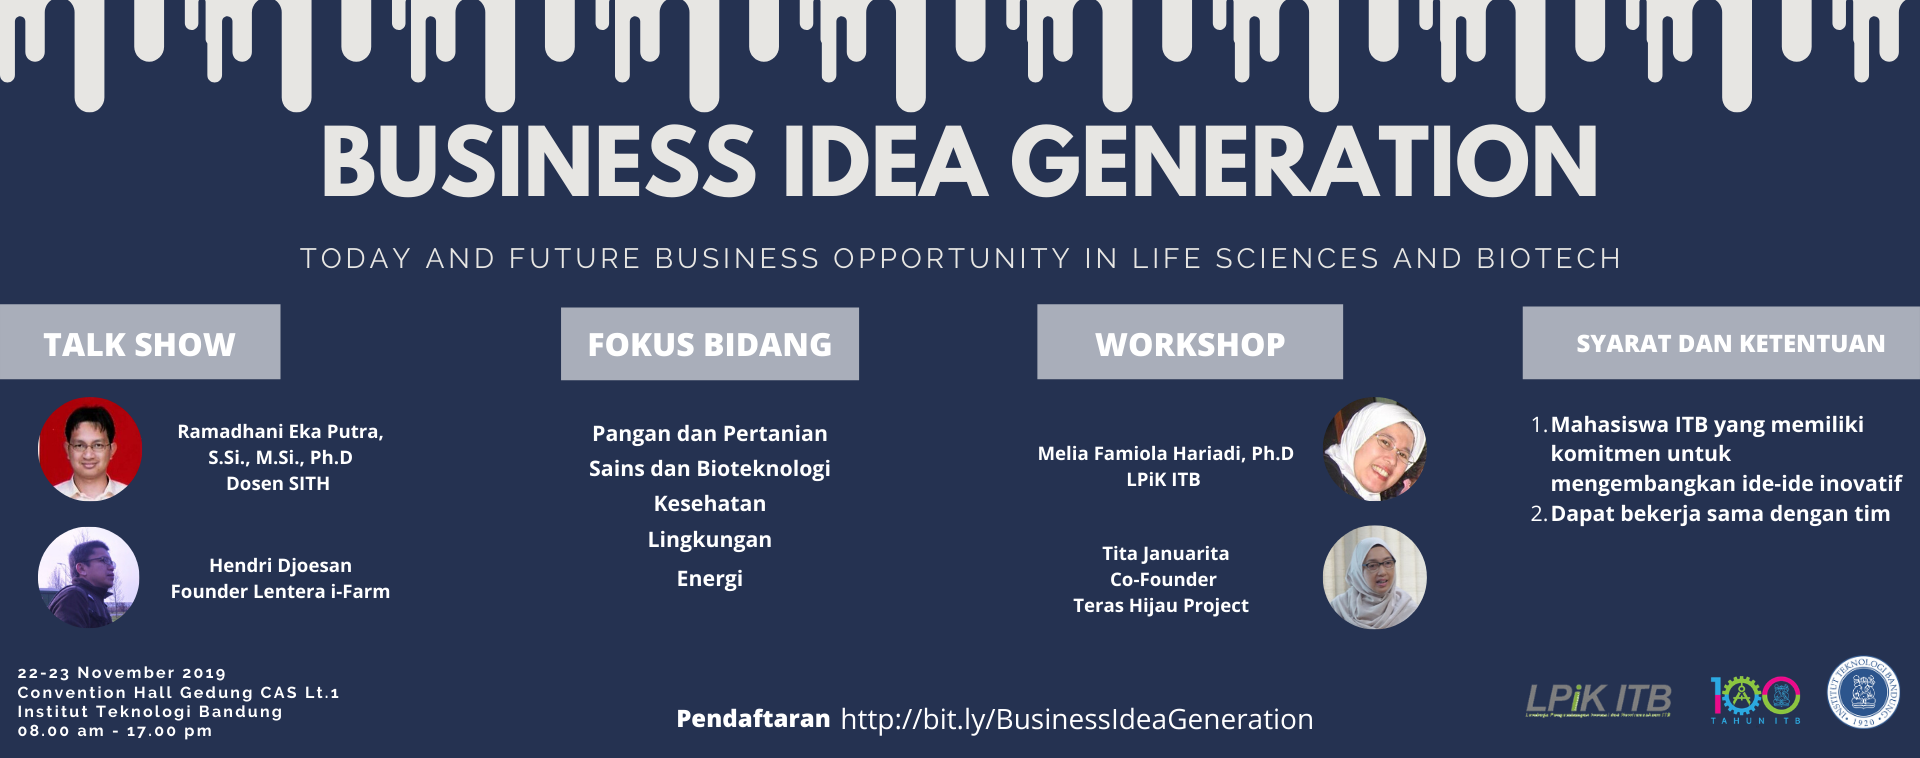 BUSINESS IDEA GENERATION